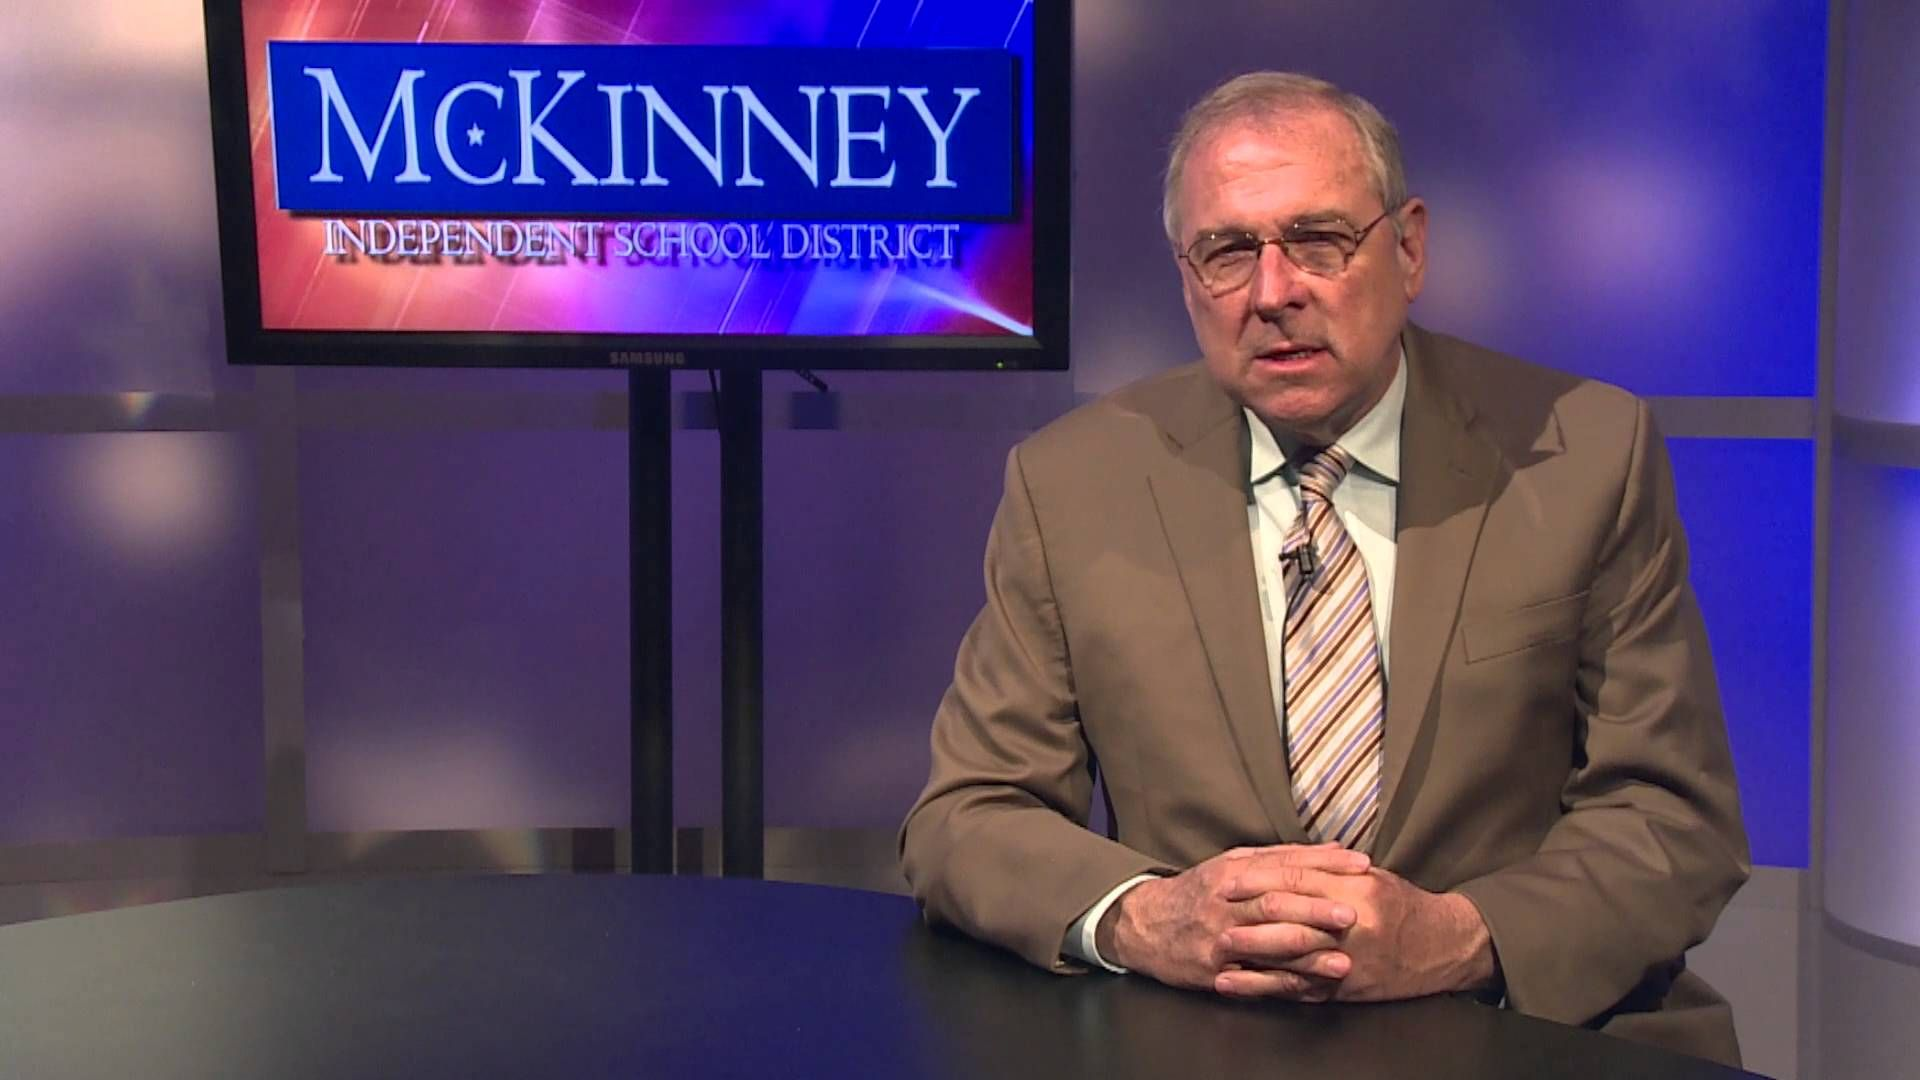 """Dr. Kennedy's Video Blog - """"More Than Test Scores"""""""